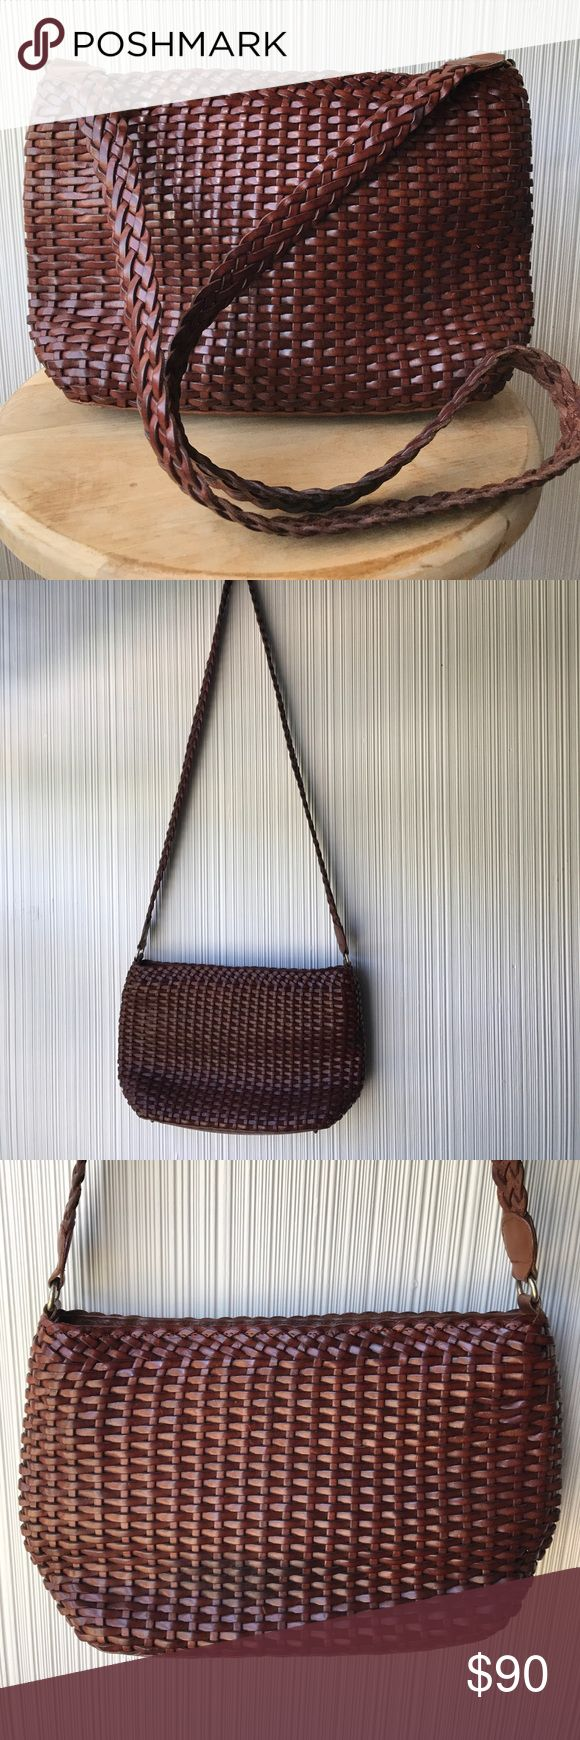 Cole Haan Weave Purse Absolutely stunning bag from Cole Haan. All over weave in a gorgeous deep cognac color. Perfectly on trend right now - genuine leather never goes out of style. Minor staining inside - in otherwise great condition. Cole Haan Bags